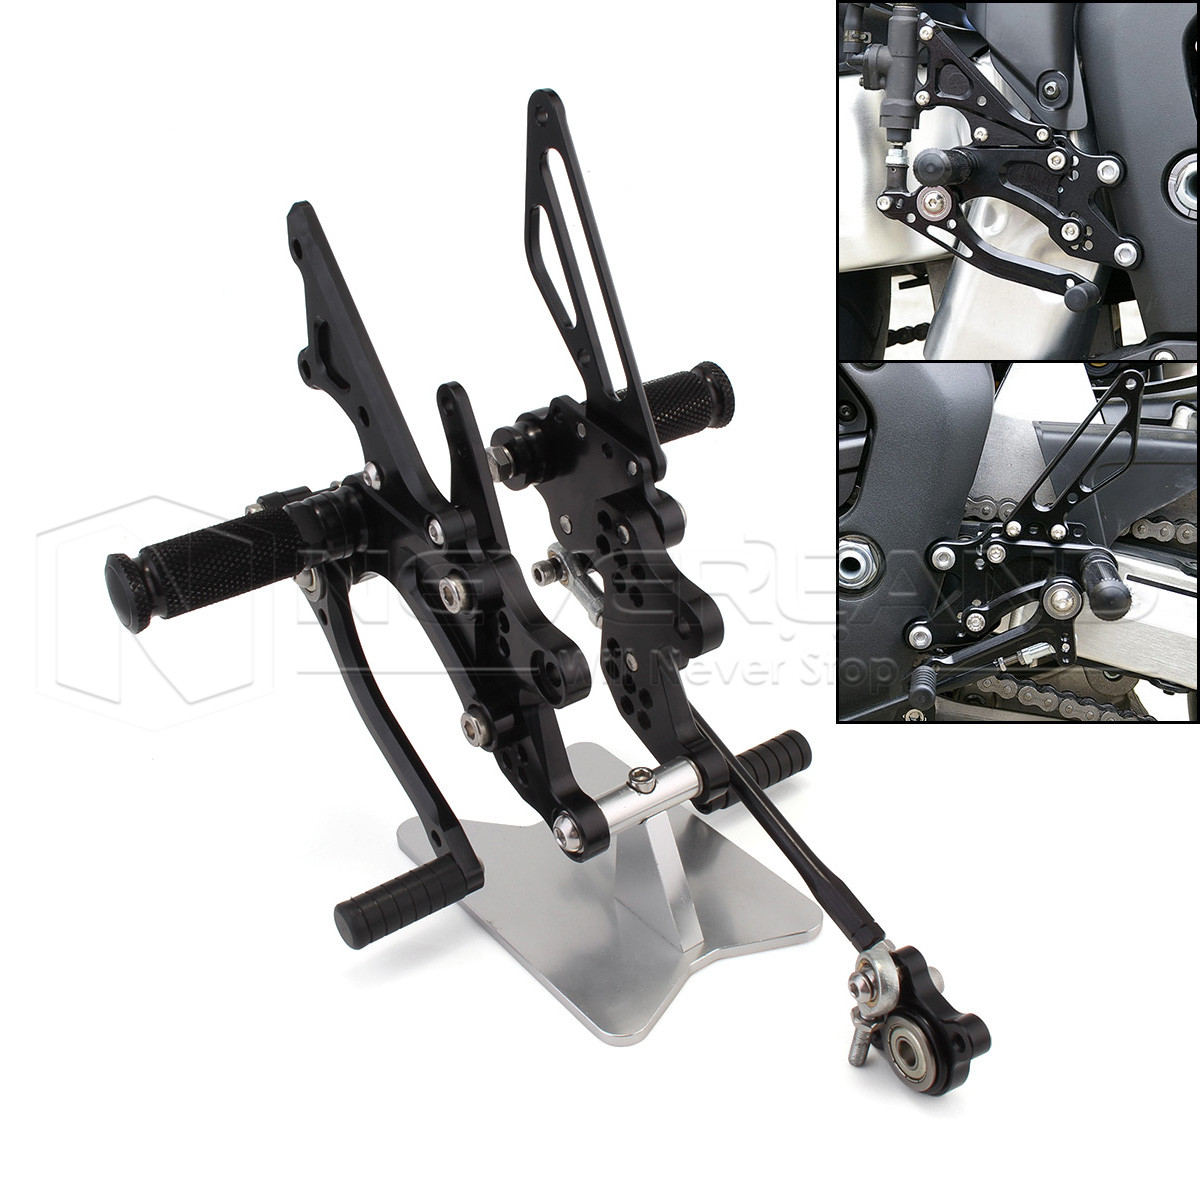 Black Motorcycle CNC Rearsets Kit Motorbike Foot pegs For Honda CBR1000RR 2004 2005 2006 2007 Rear Sets D20 arashi motorcycle parts radiator grille protective cover grill guard protector for 2003 2004 2005 2006 honda cbr600rr cbr 600 rr